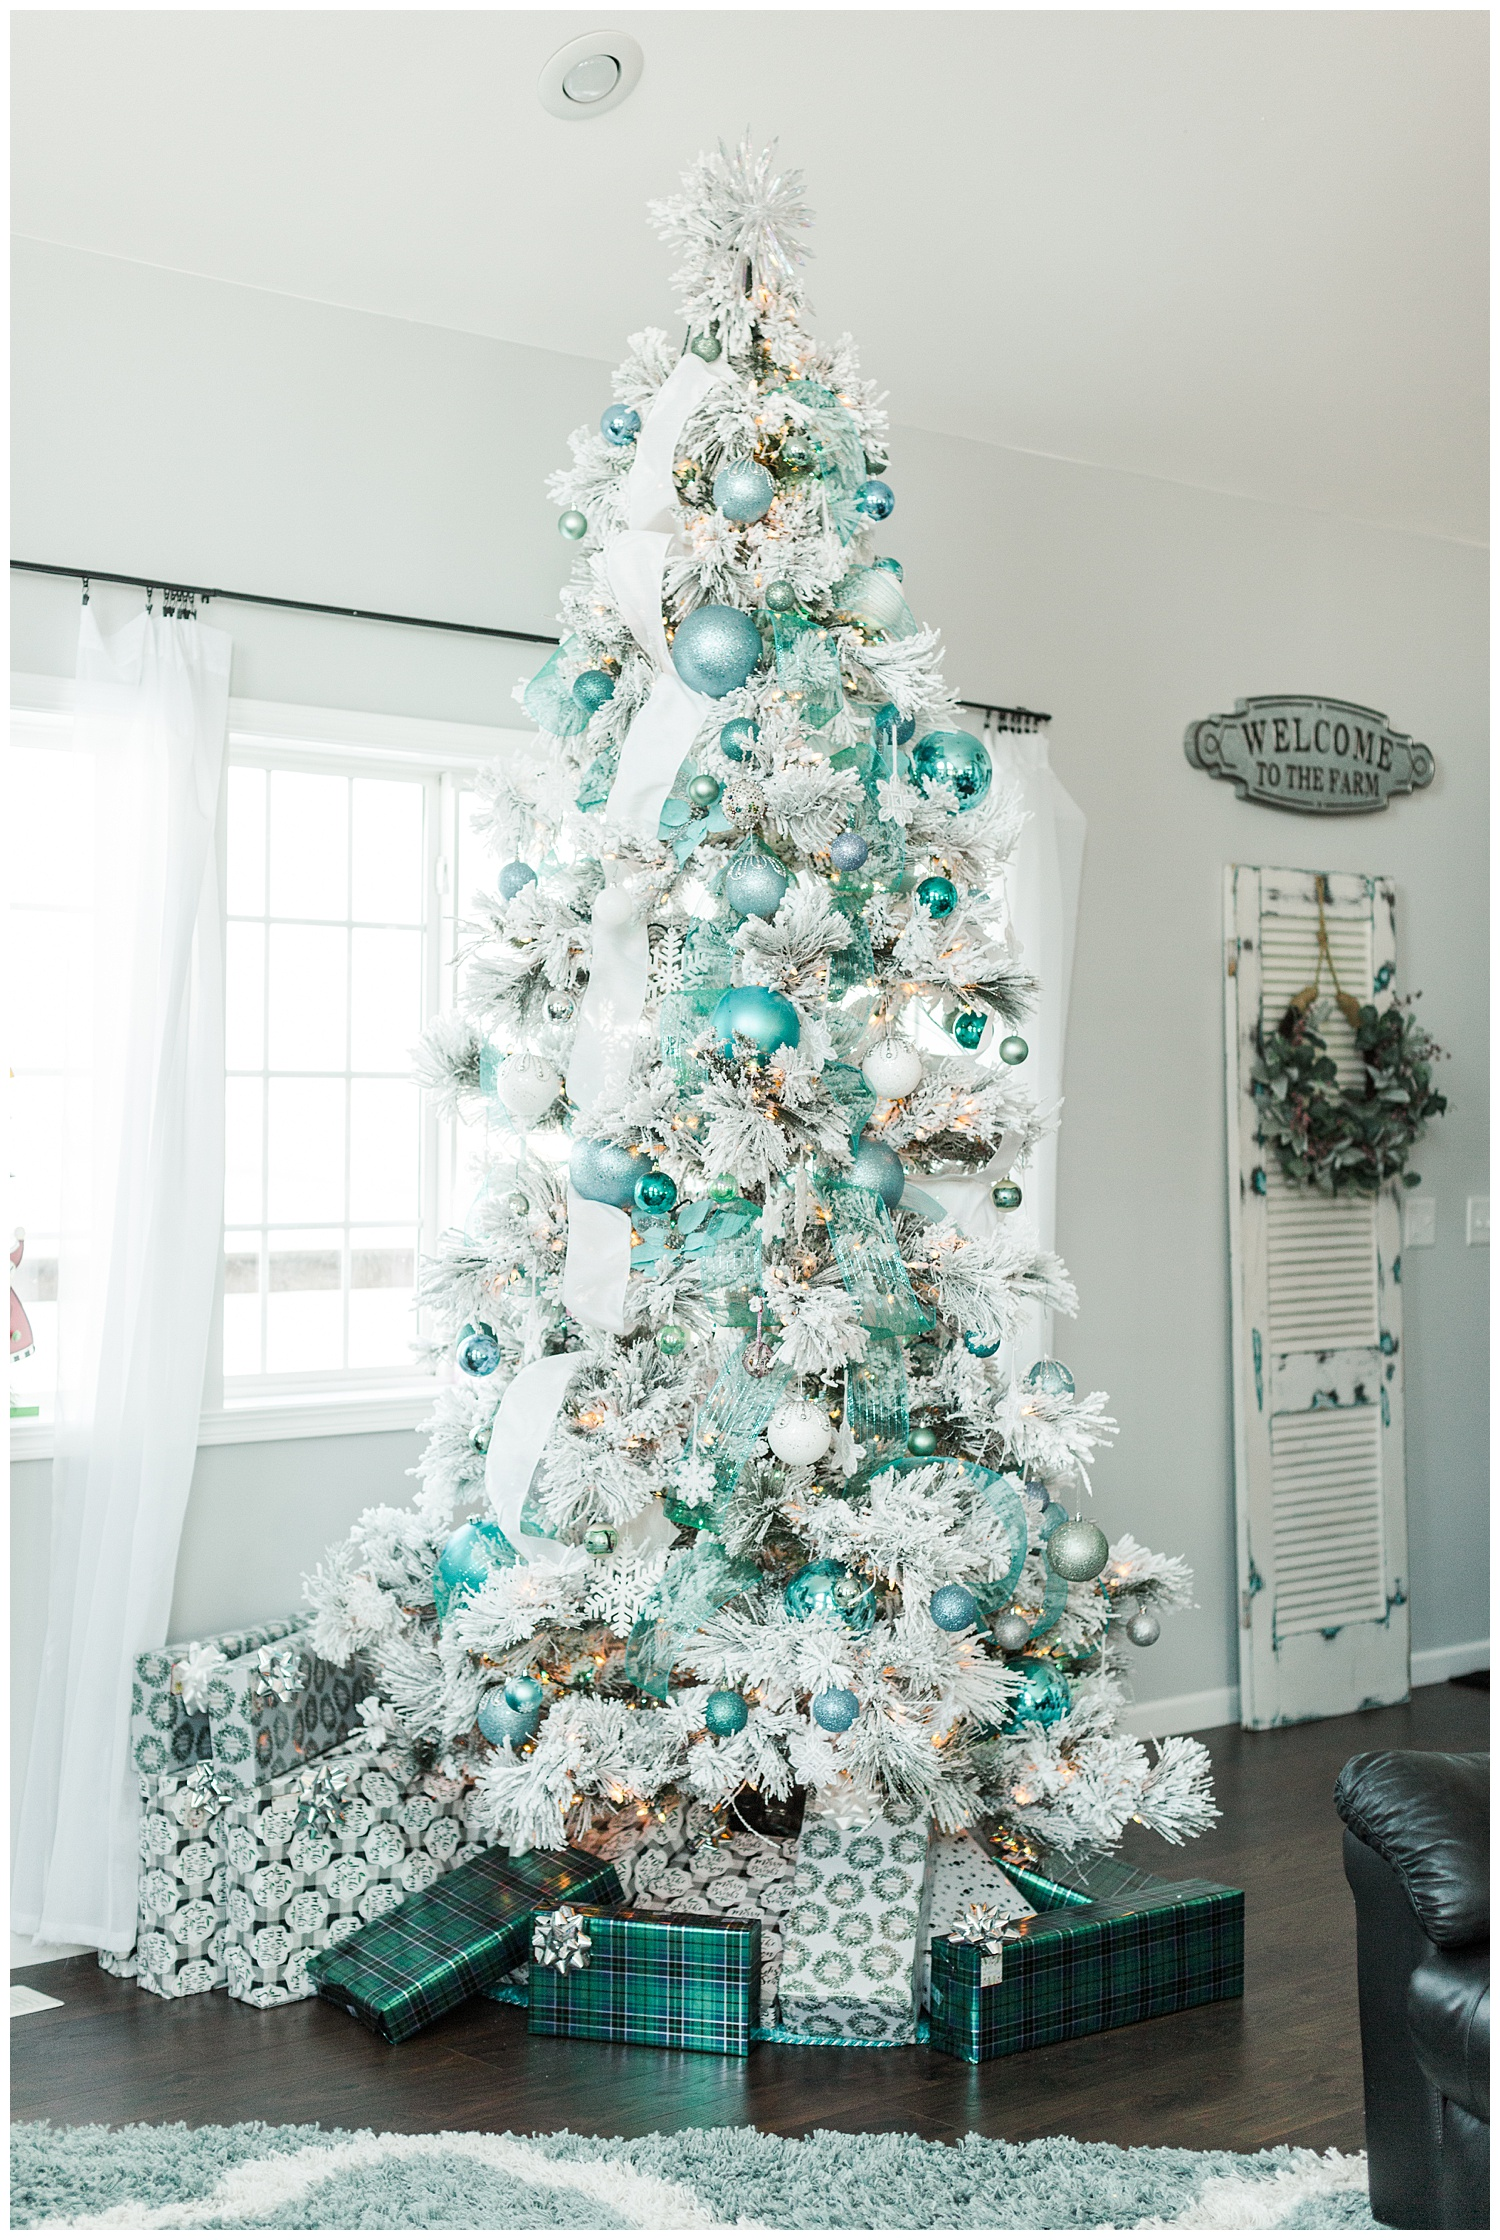 Flocked Christmas tree decorated with white and teal ribbon and teal, light blue and aqua ornaments | CB Studio